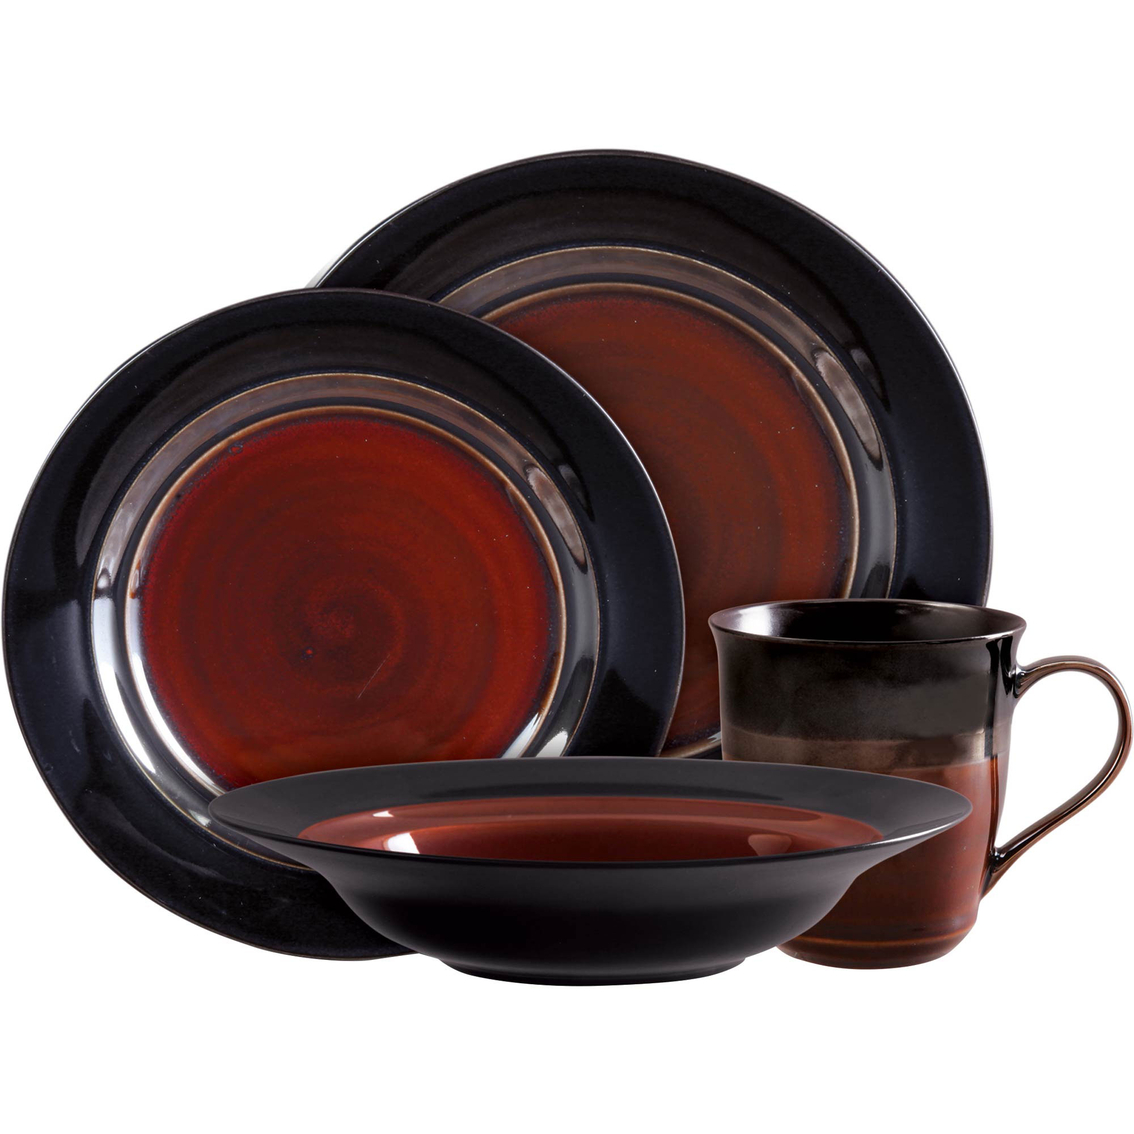 Dinnerware & Completer Sets | Home & Appliances | Shop The Exchange